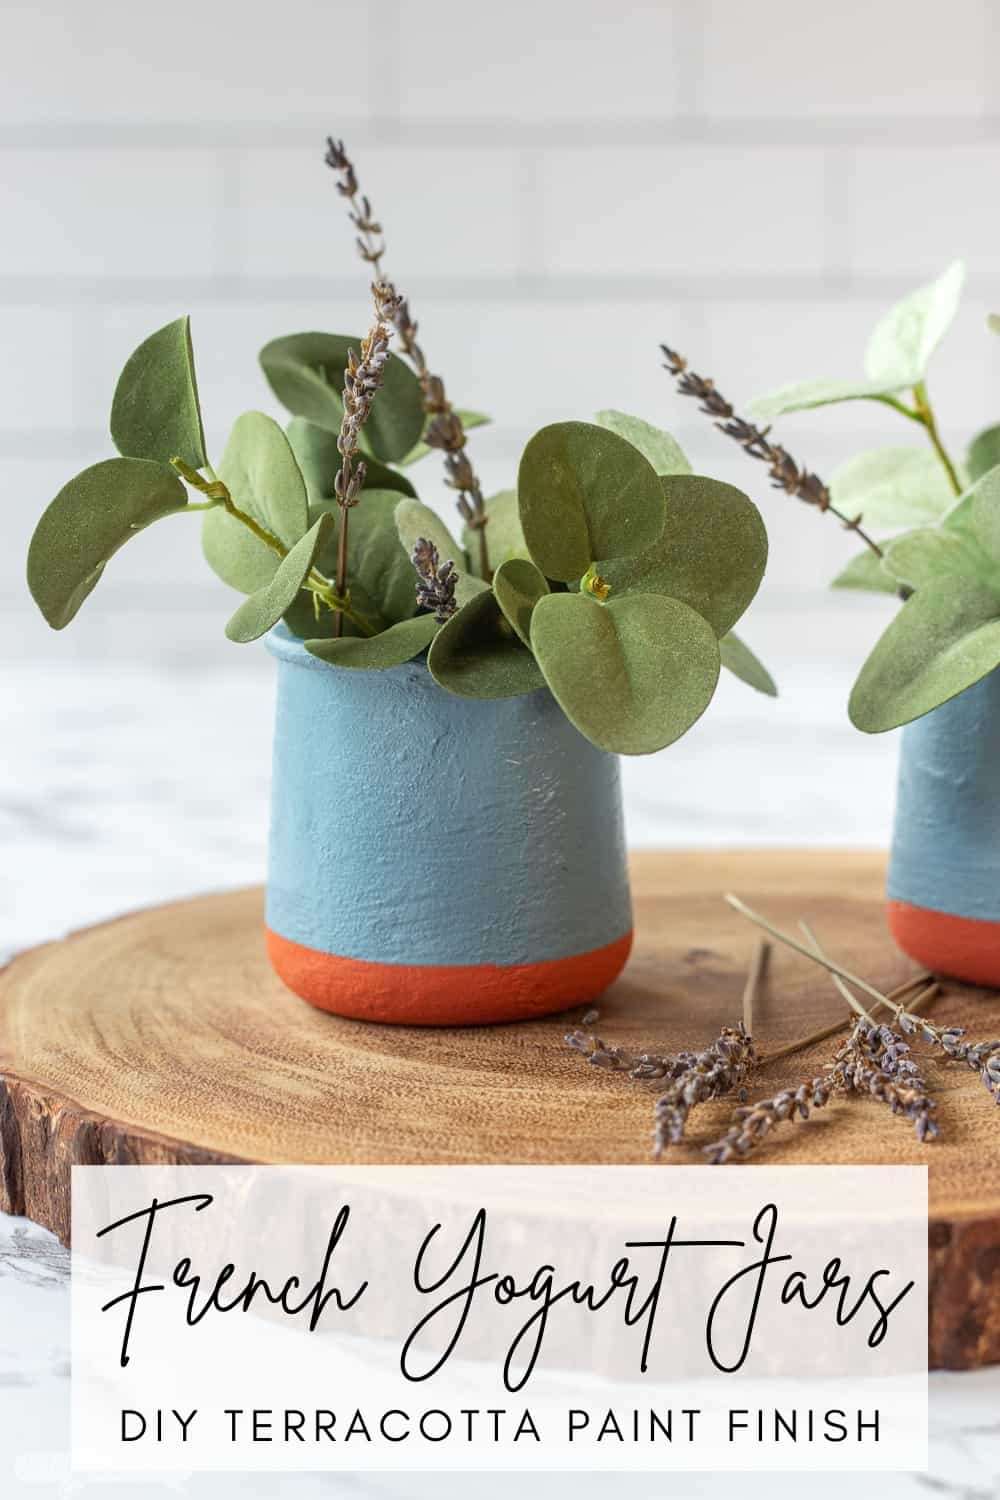 DIY painted French yogurt jar with greenery on a wooden charger